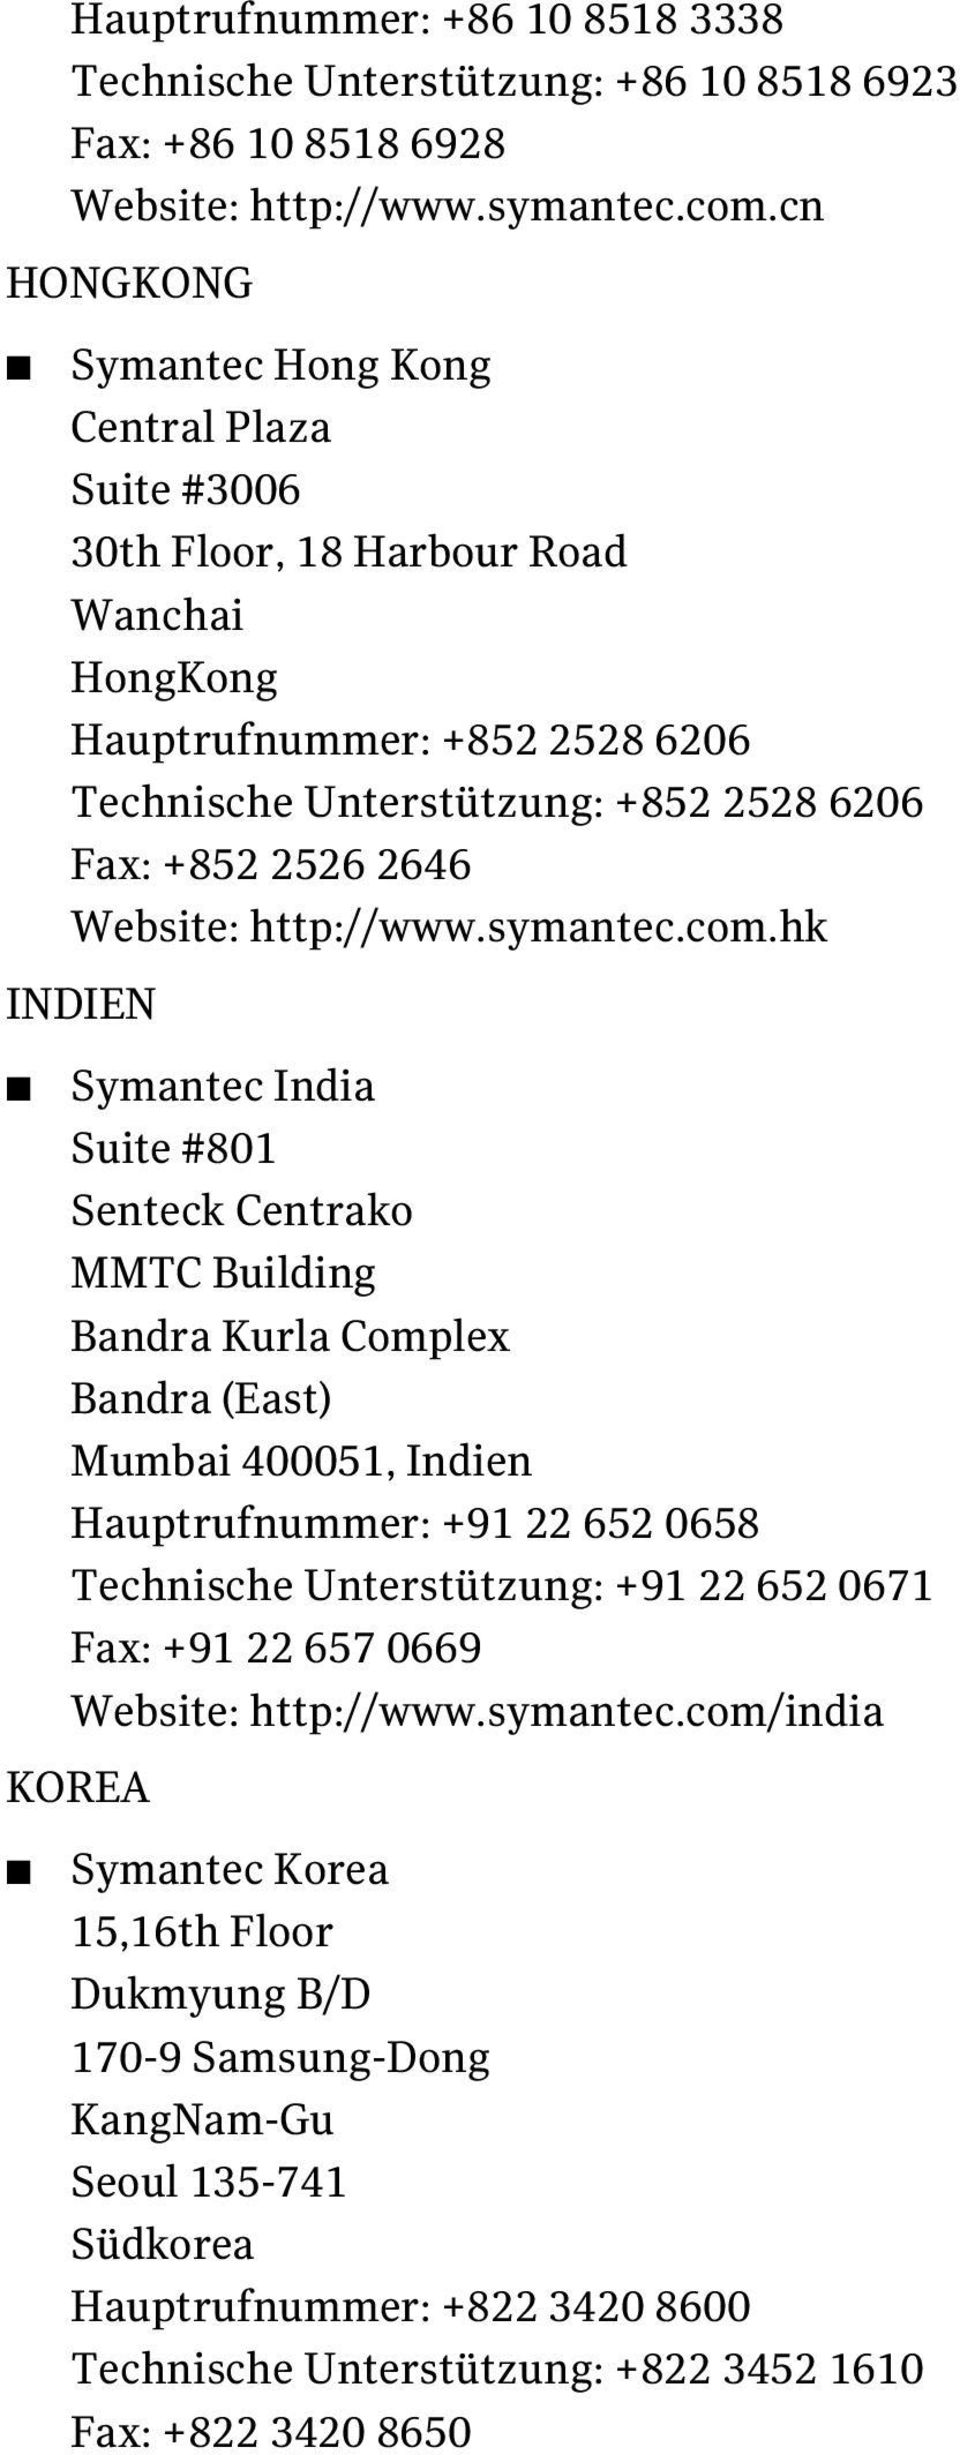 Website: http://www.symantec.com.